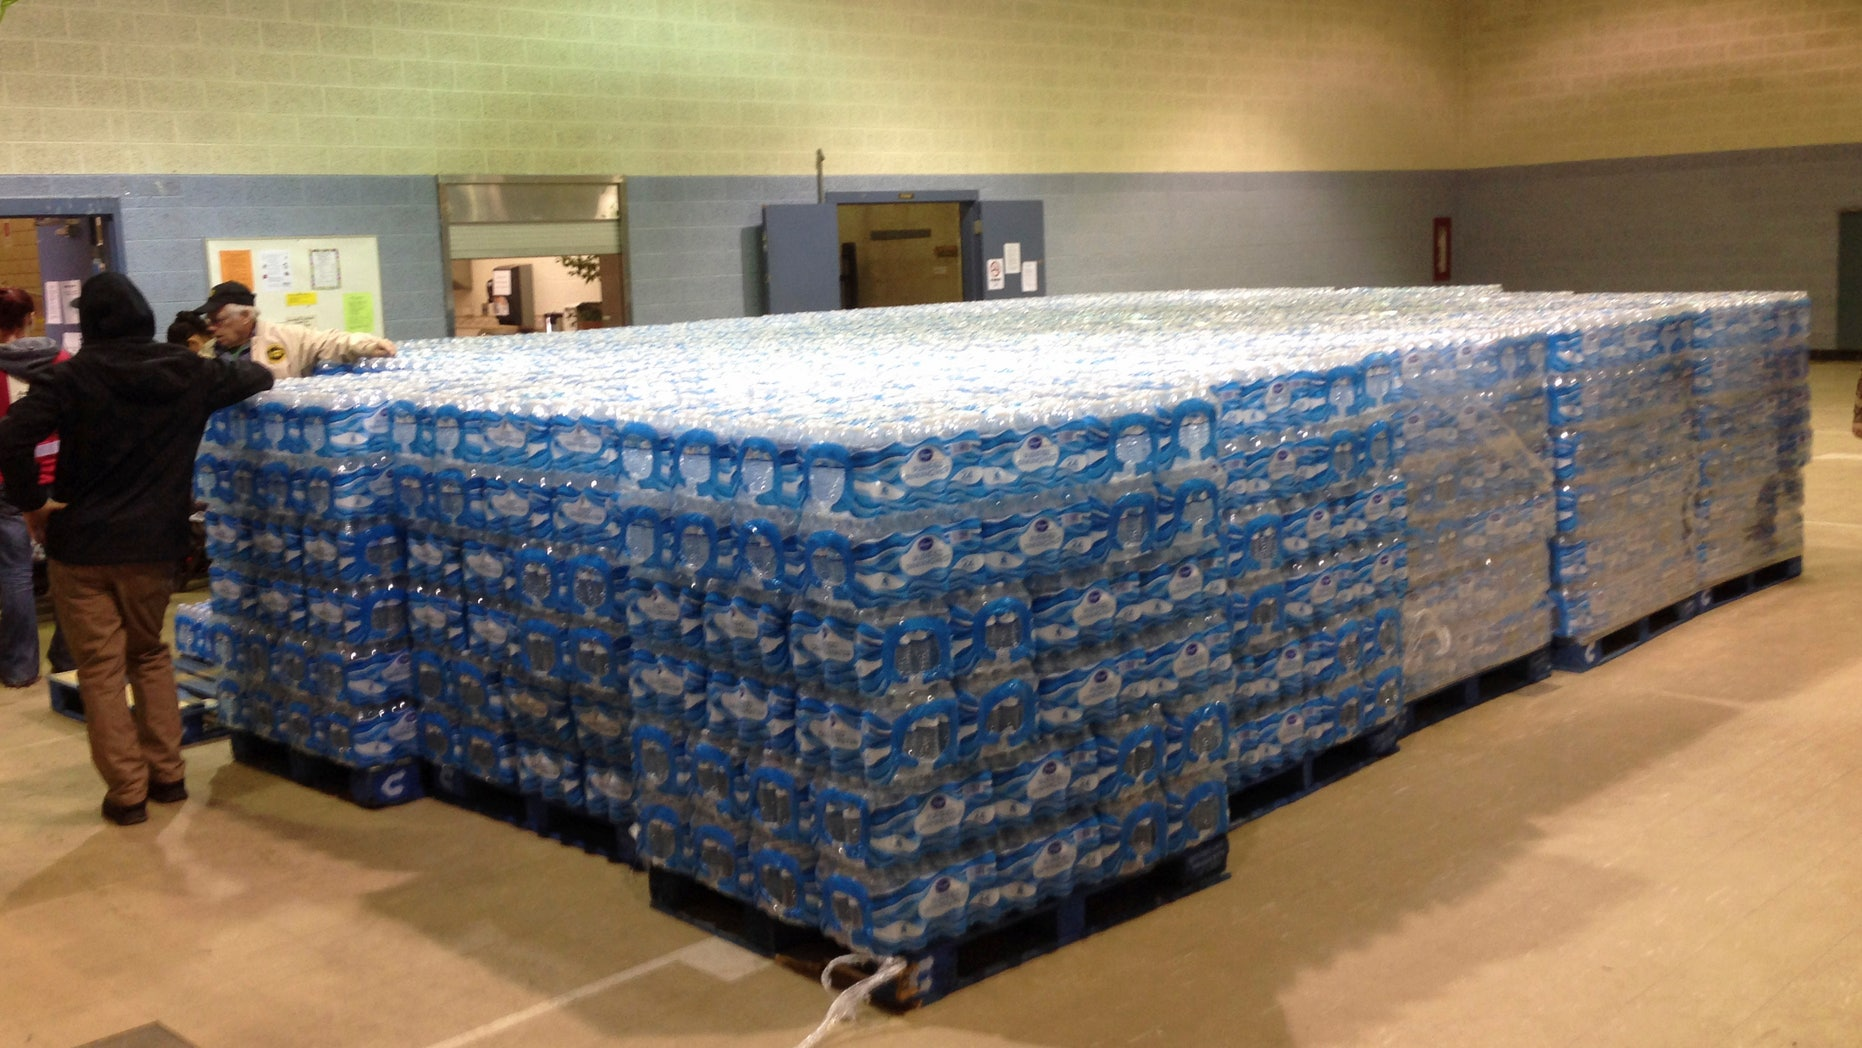 Pallets of water, ready for distribution in the community, sit at the Sebring Community Center, Tuesday, Jan. 26, 2016 in Sebring, Ohio. Authorities have been handing out bottled water, and schools were closed Tuesday for a third day in Sebring, a village about 60 miles southeast of Cleveland. The Sebring water system serves 8,100 homes and businesses in three Mahoning County communities. Testing over the weekend in Sebring found one school drinking fountain with lead levels that exceed EPA standards. (AP Photo/Mark Gillispie)